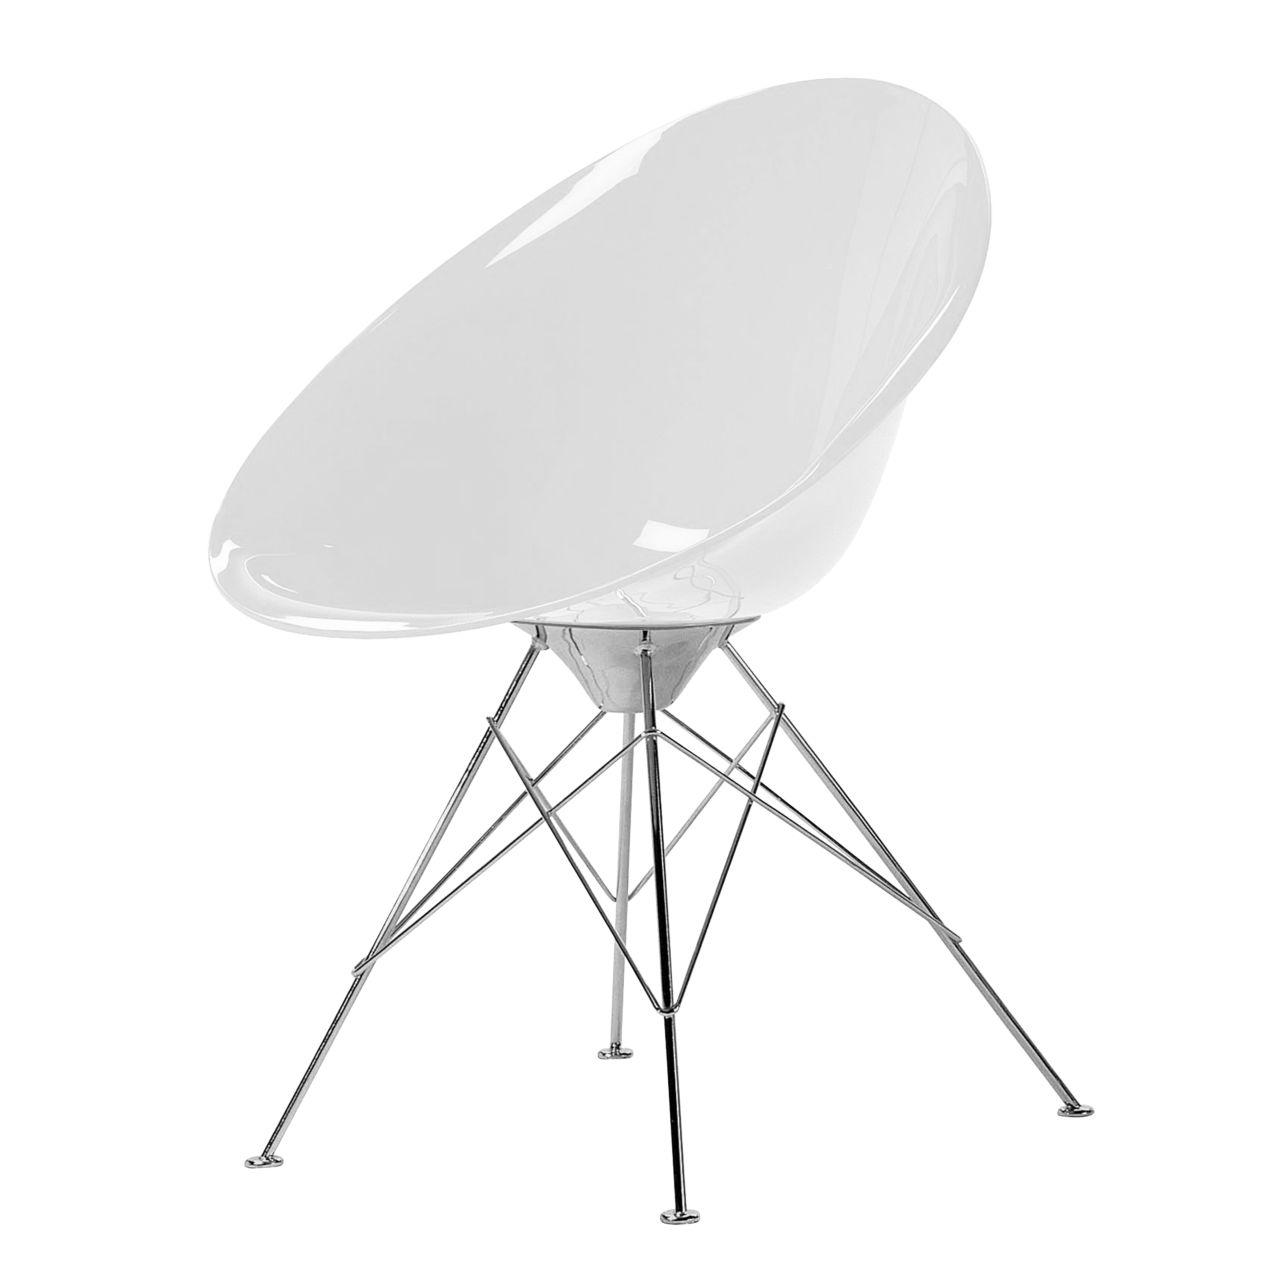 Ero S Chair in Glossy White by Kartell